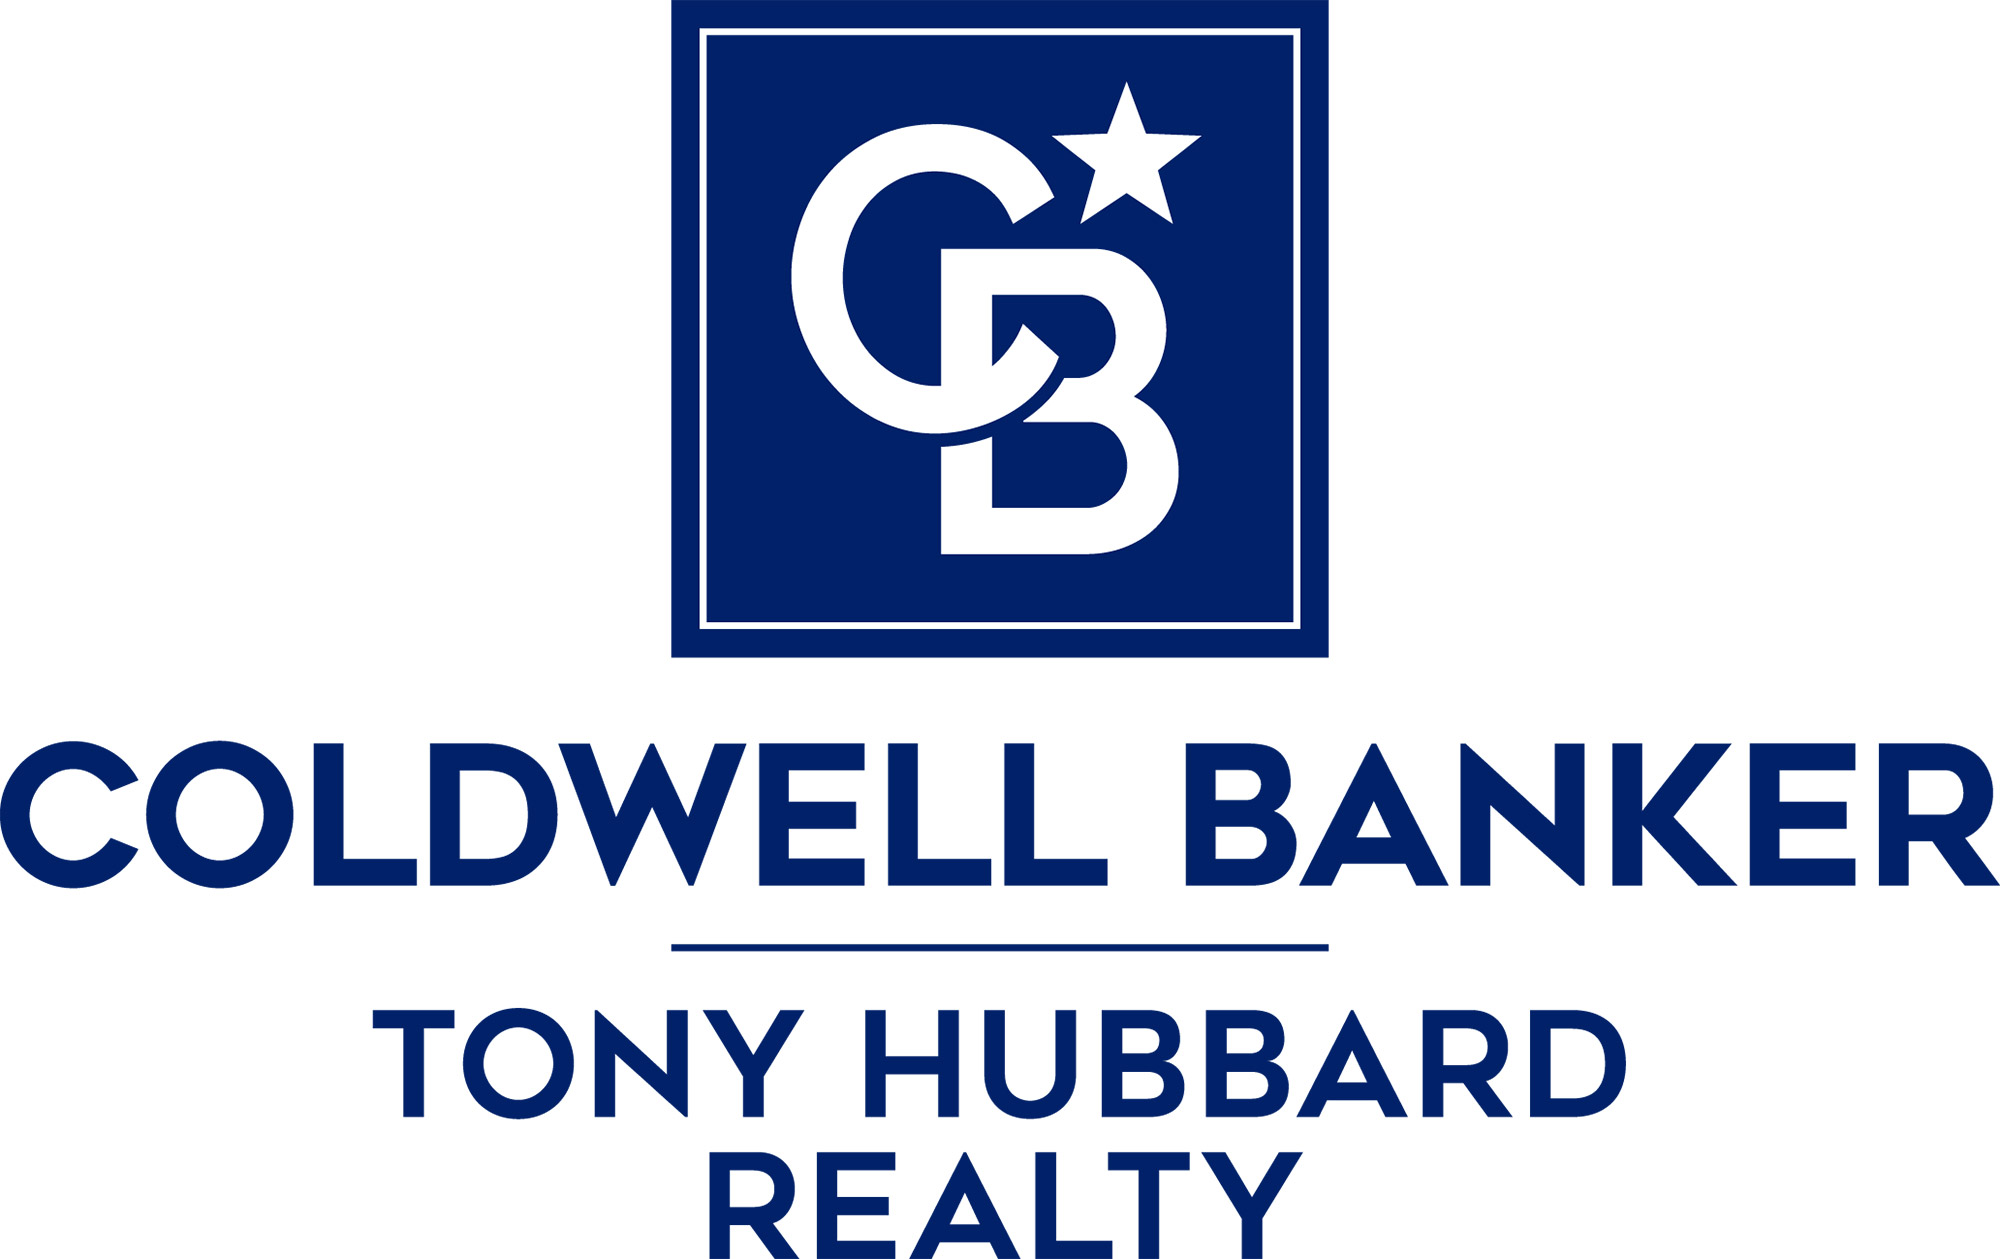 Brandon Good - Coldwell Banker Tony Hubbard